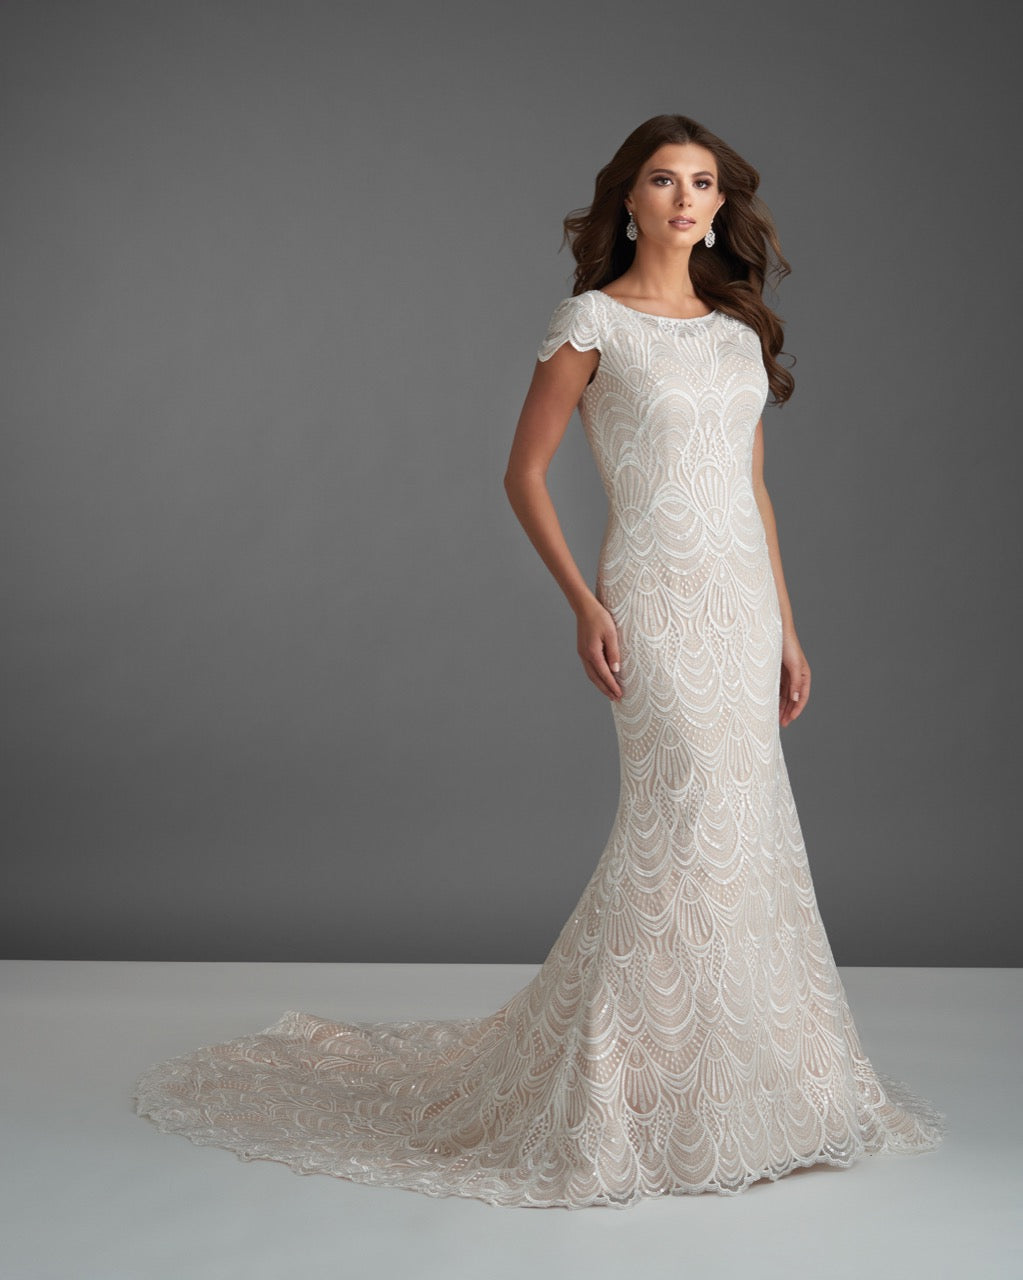 Bonny Bridal 2912 Modest Wedding Dress Bliss Collection from A Closet Full of Dresses